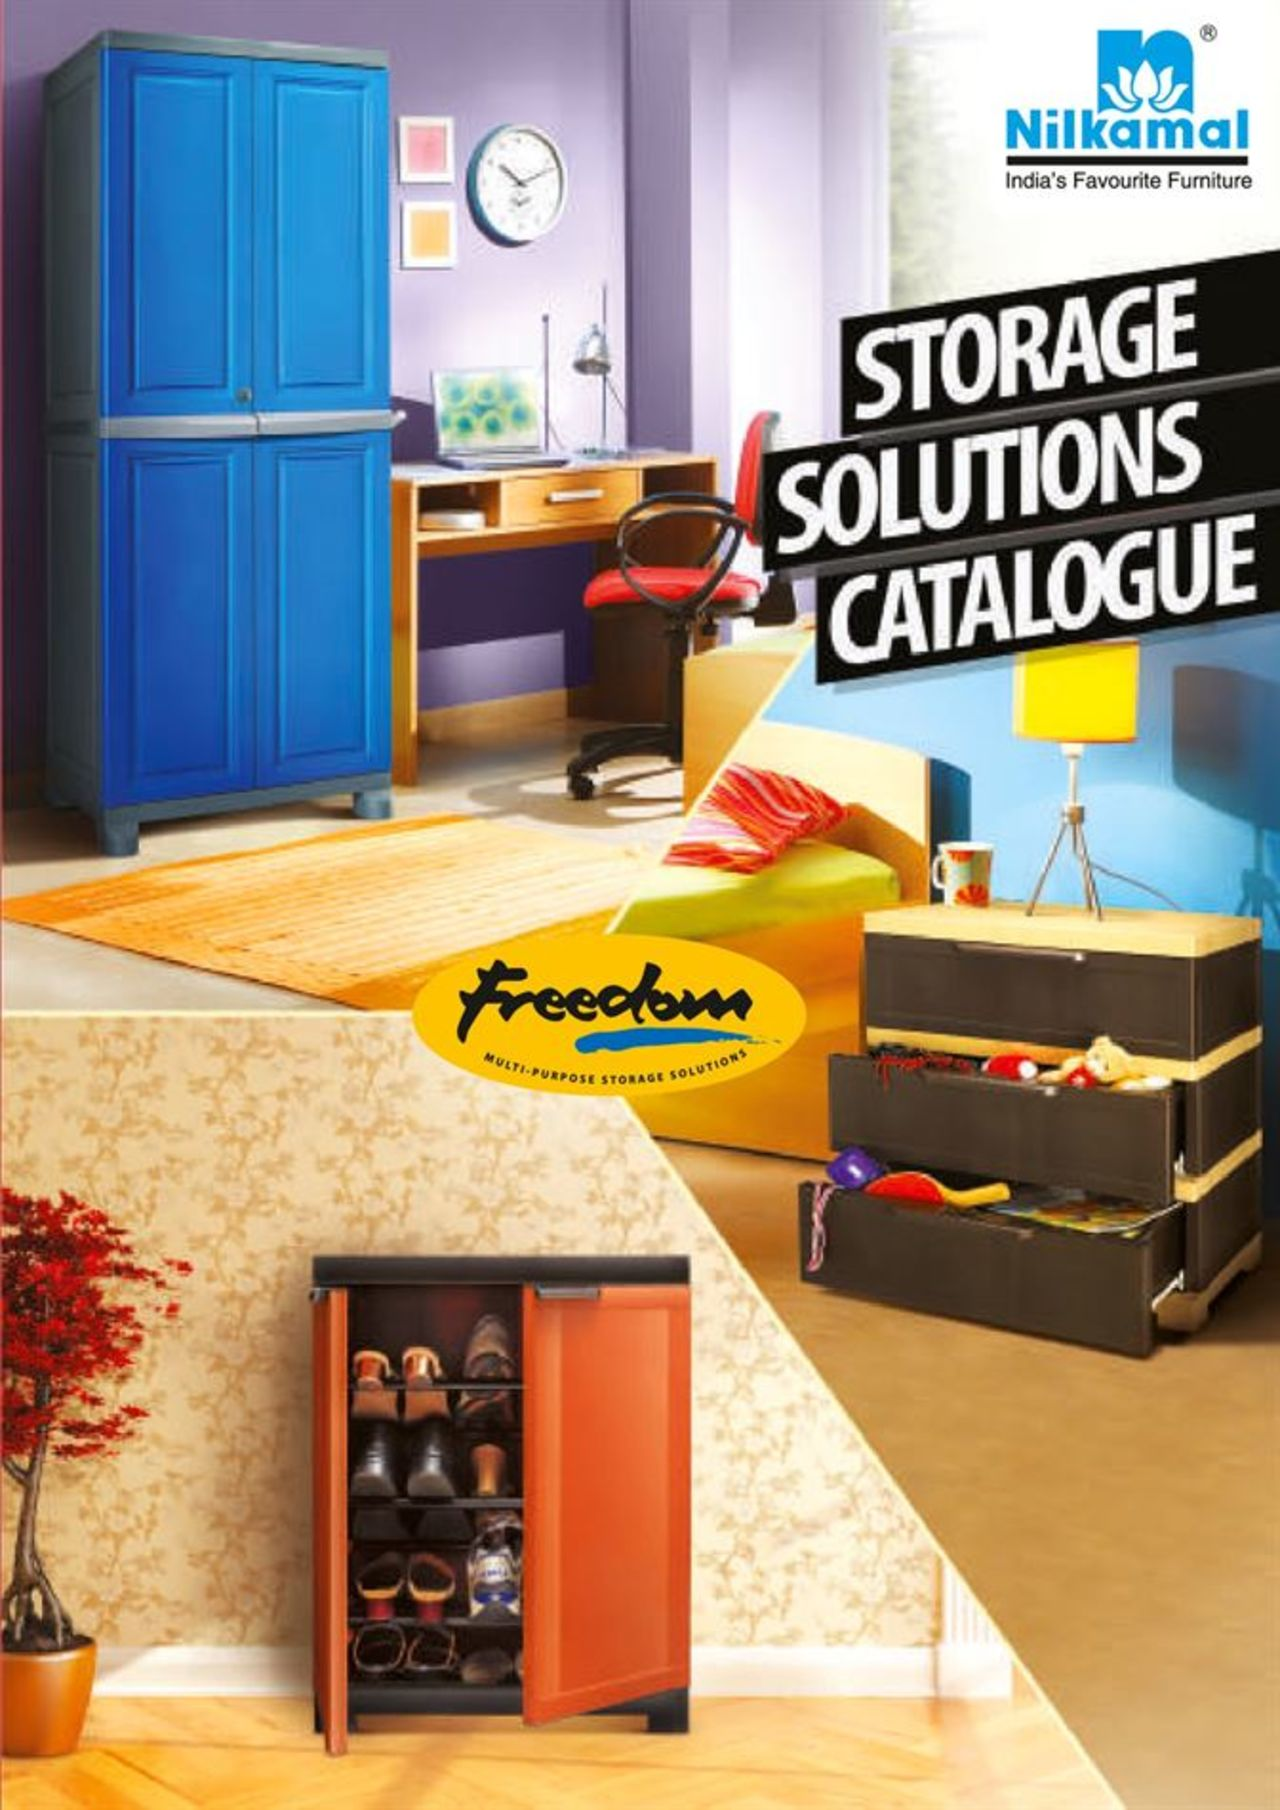 Nilkamal catalogue valid from 06/05/2019 - page number 1